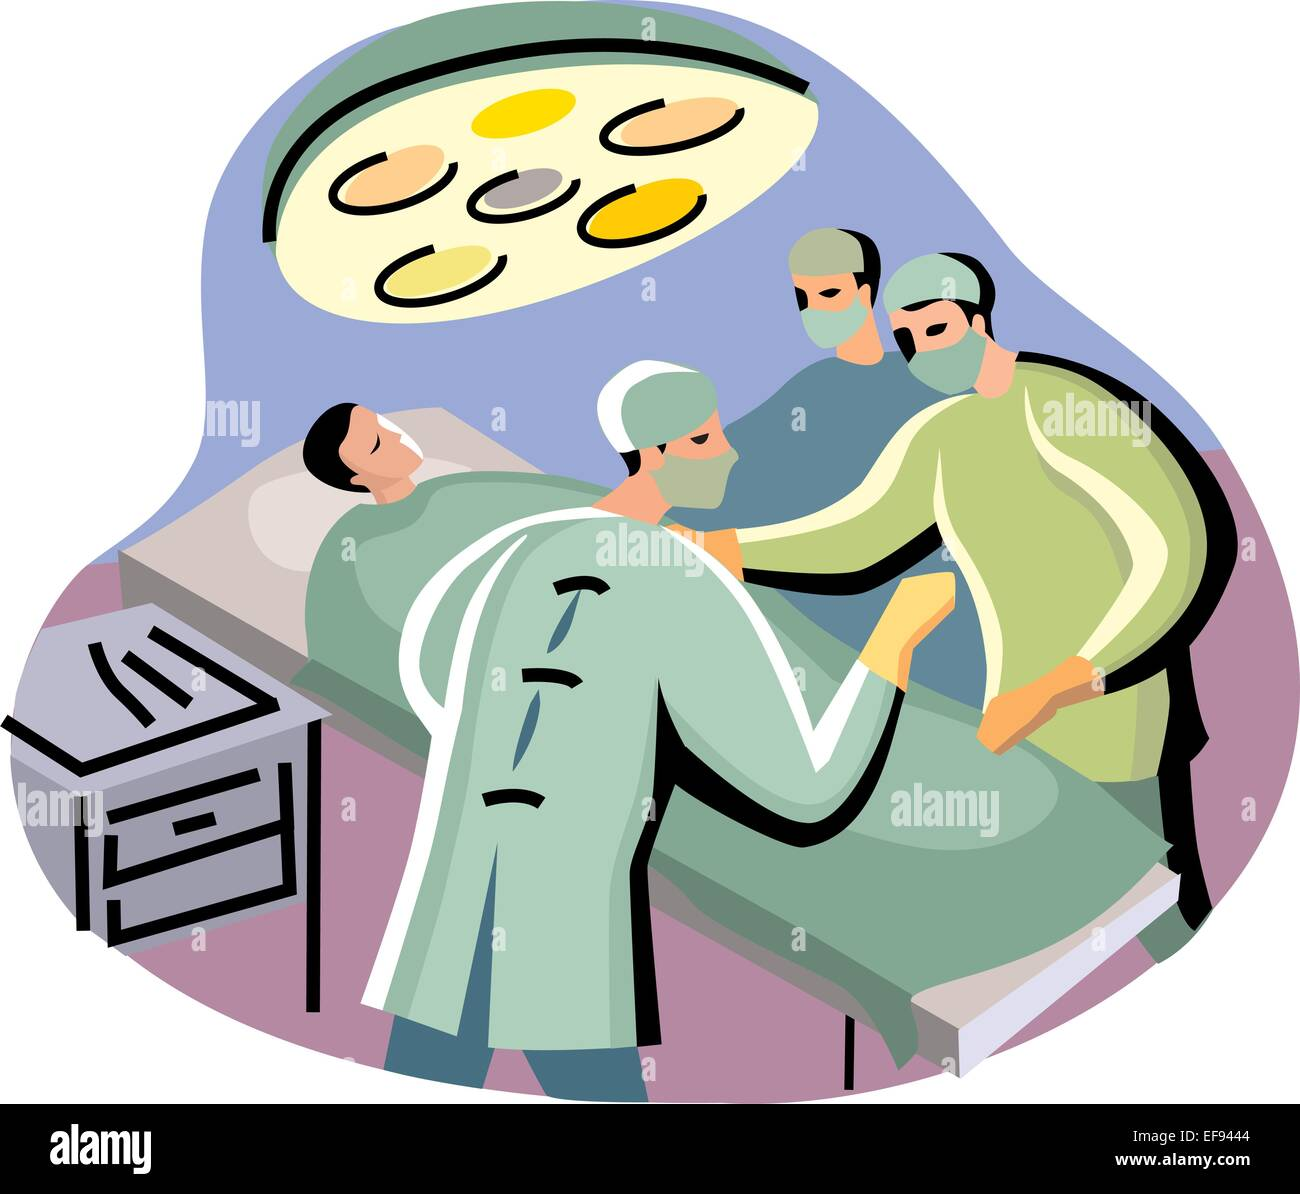 Doctors Performing Surgery - Stock Vector